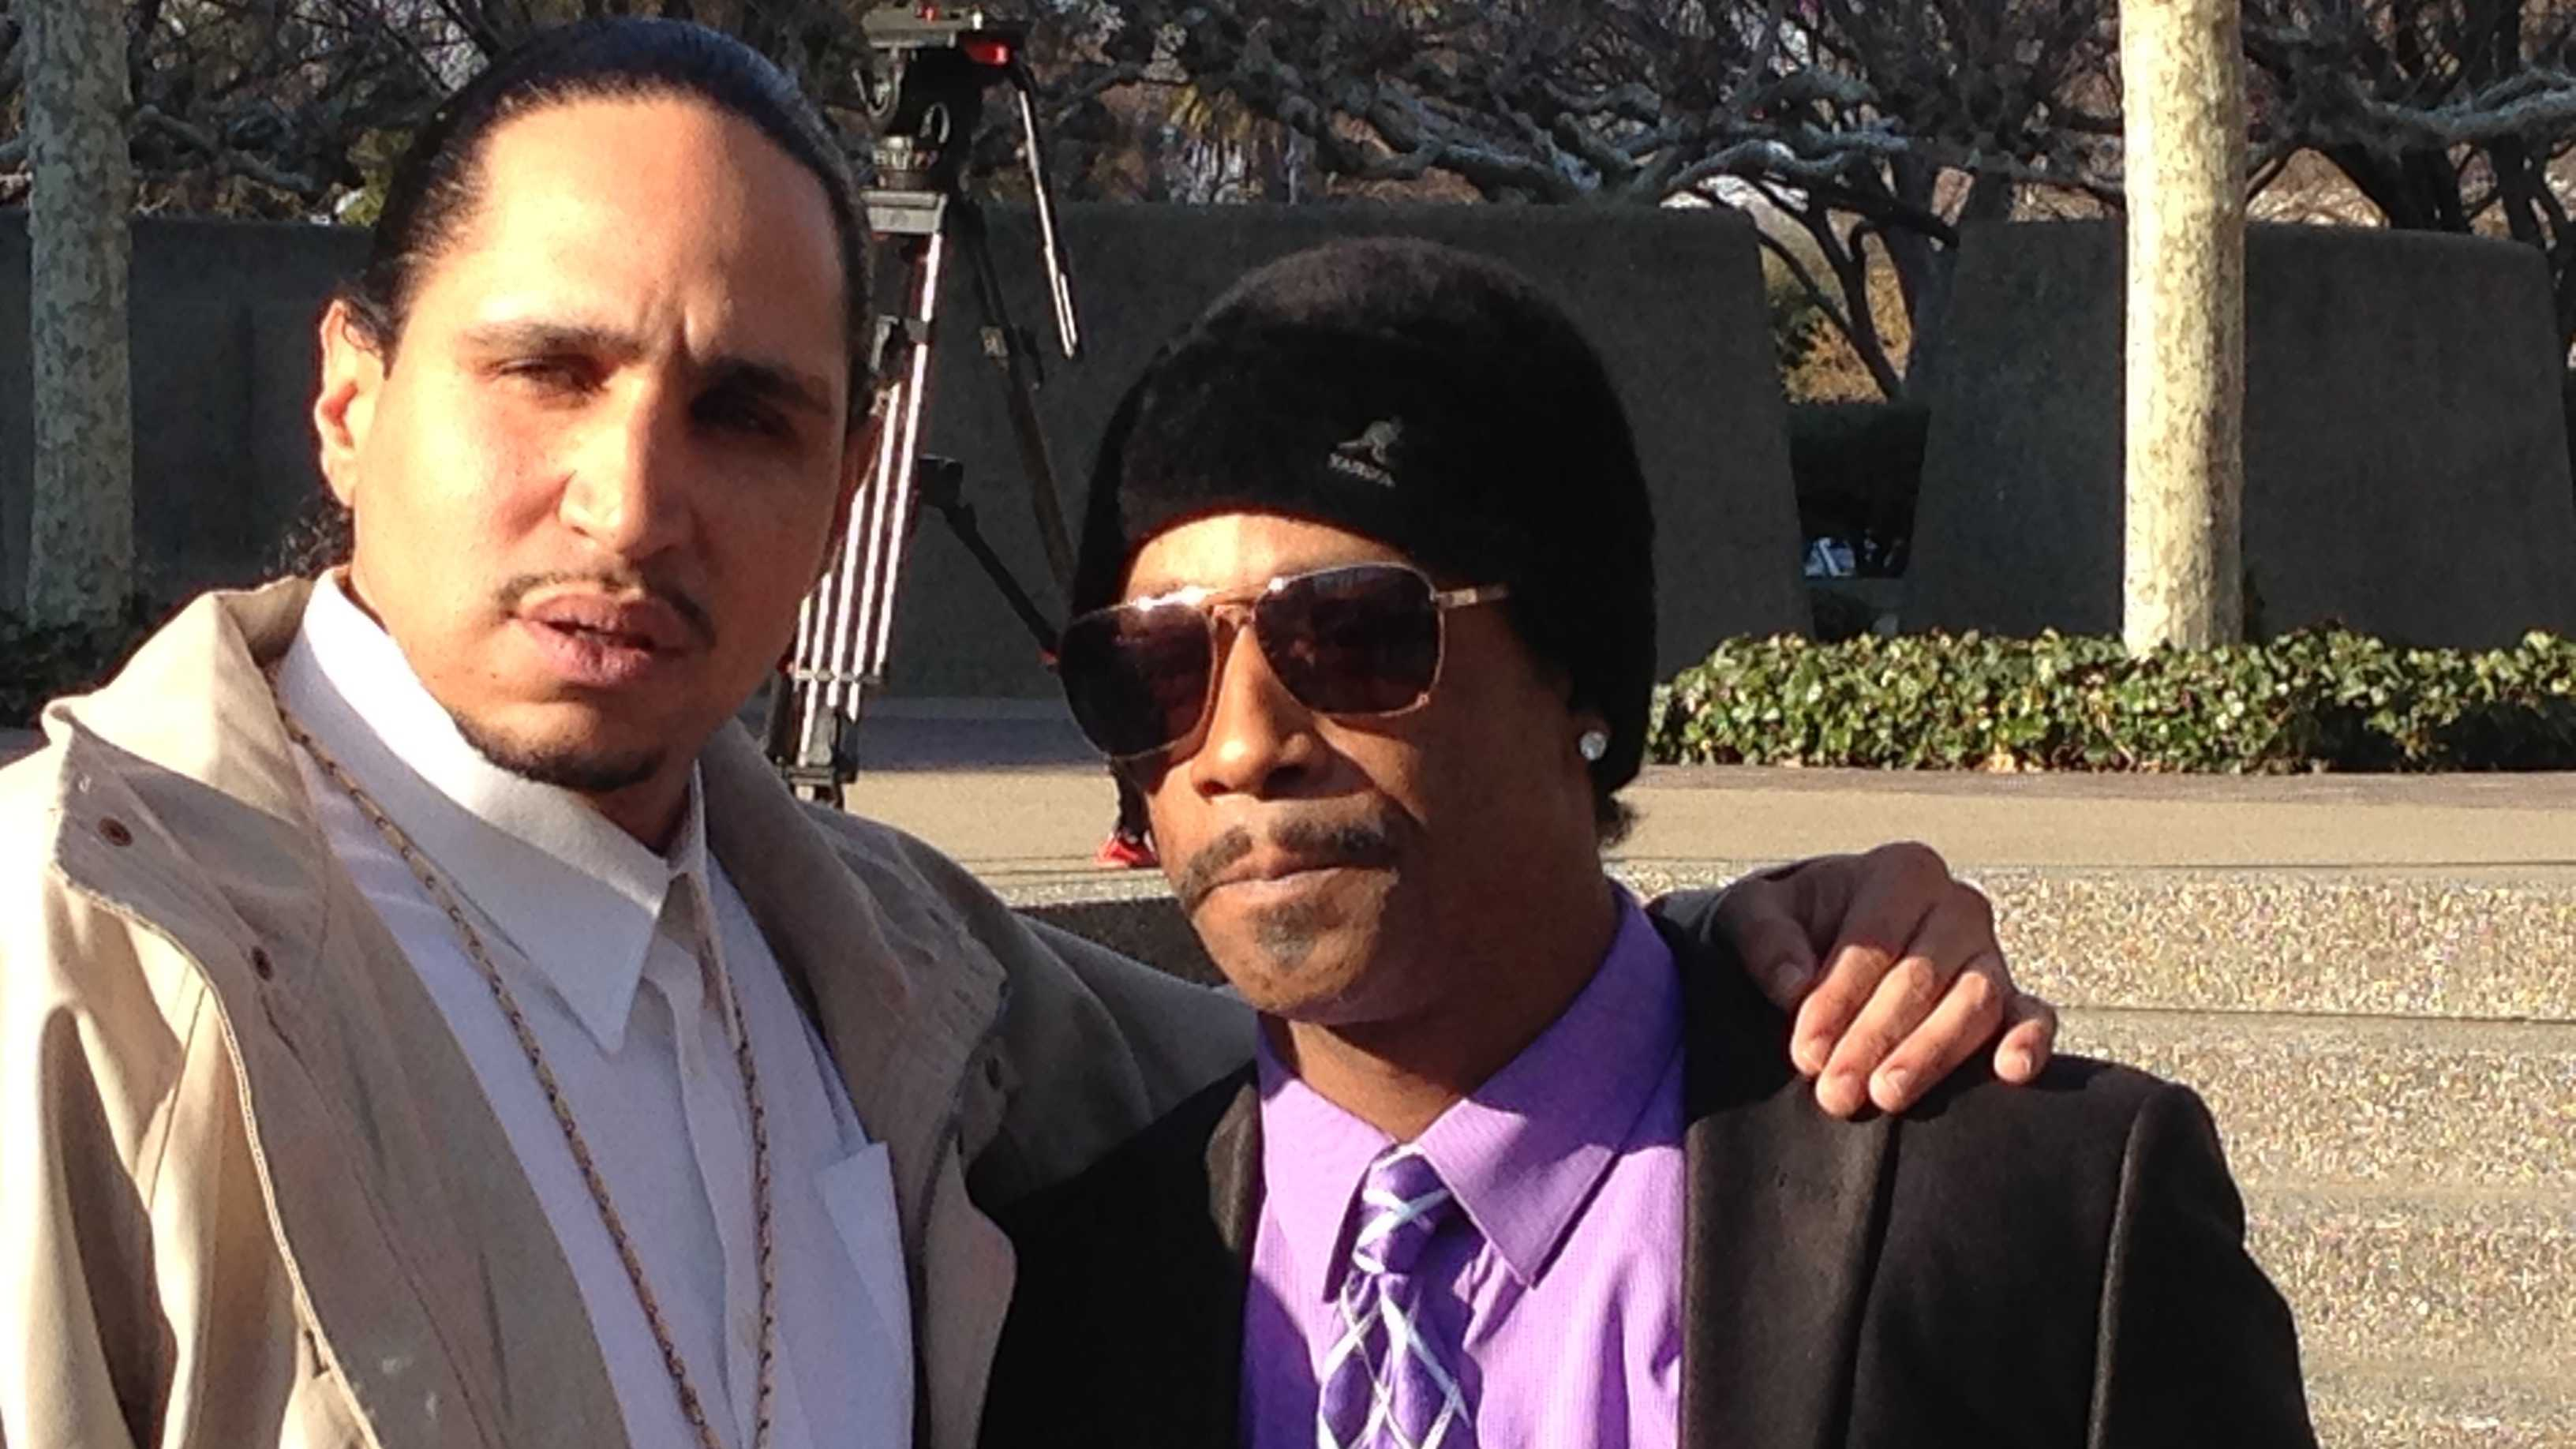 Katt Williams poses with an unidentified man outside the Sacramento County courthouse.